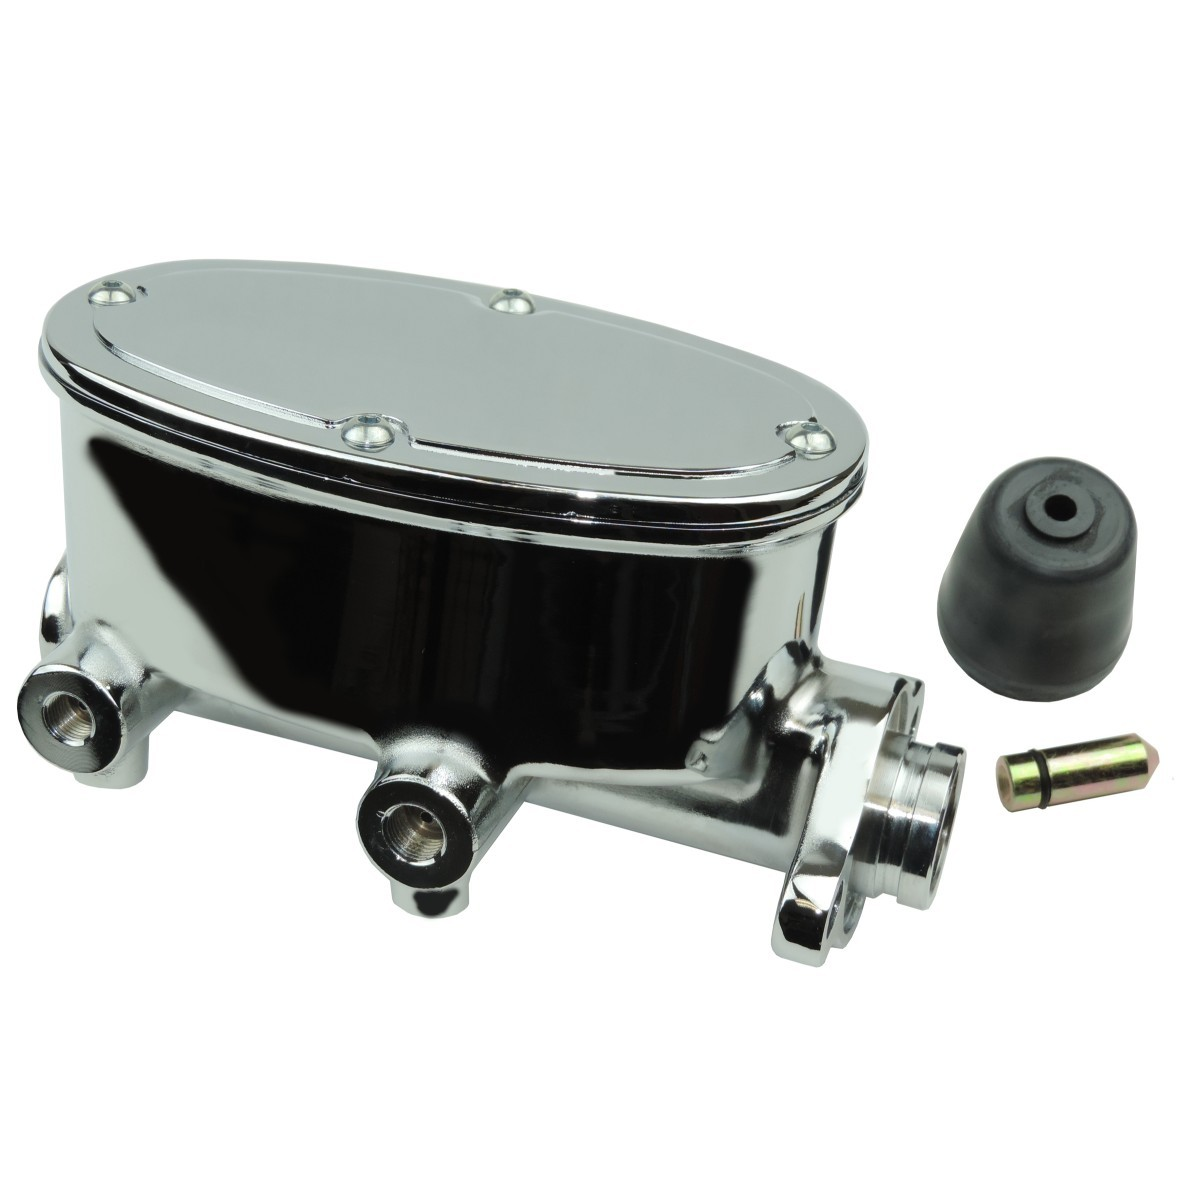 Fixed Black Disc Drum Proportioning Valve Kit for Wilwood Oval Master Cylinders